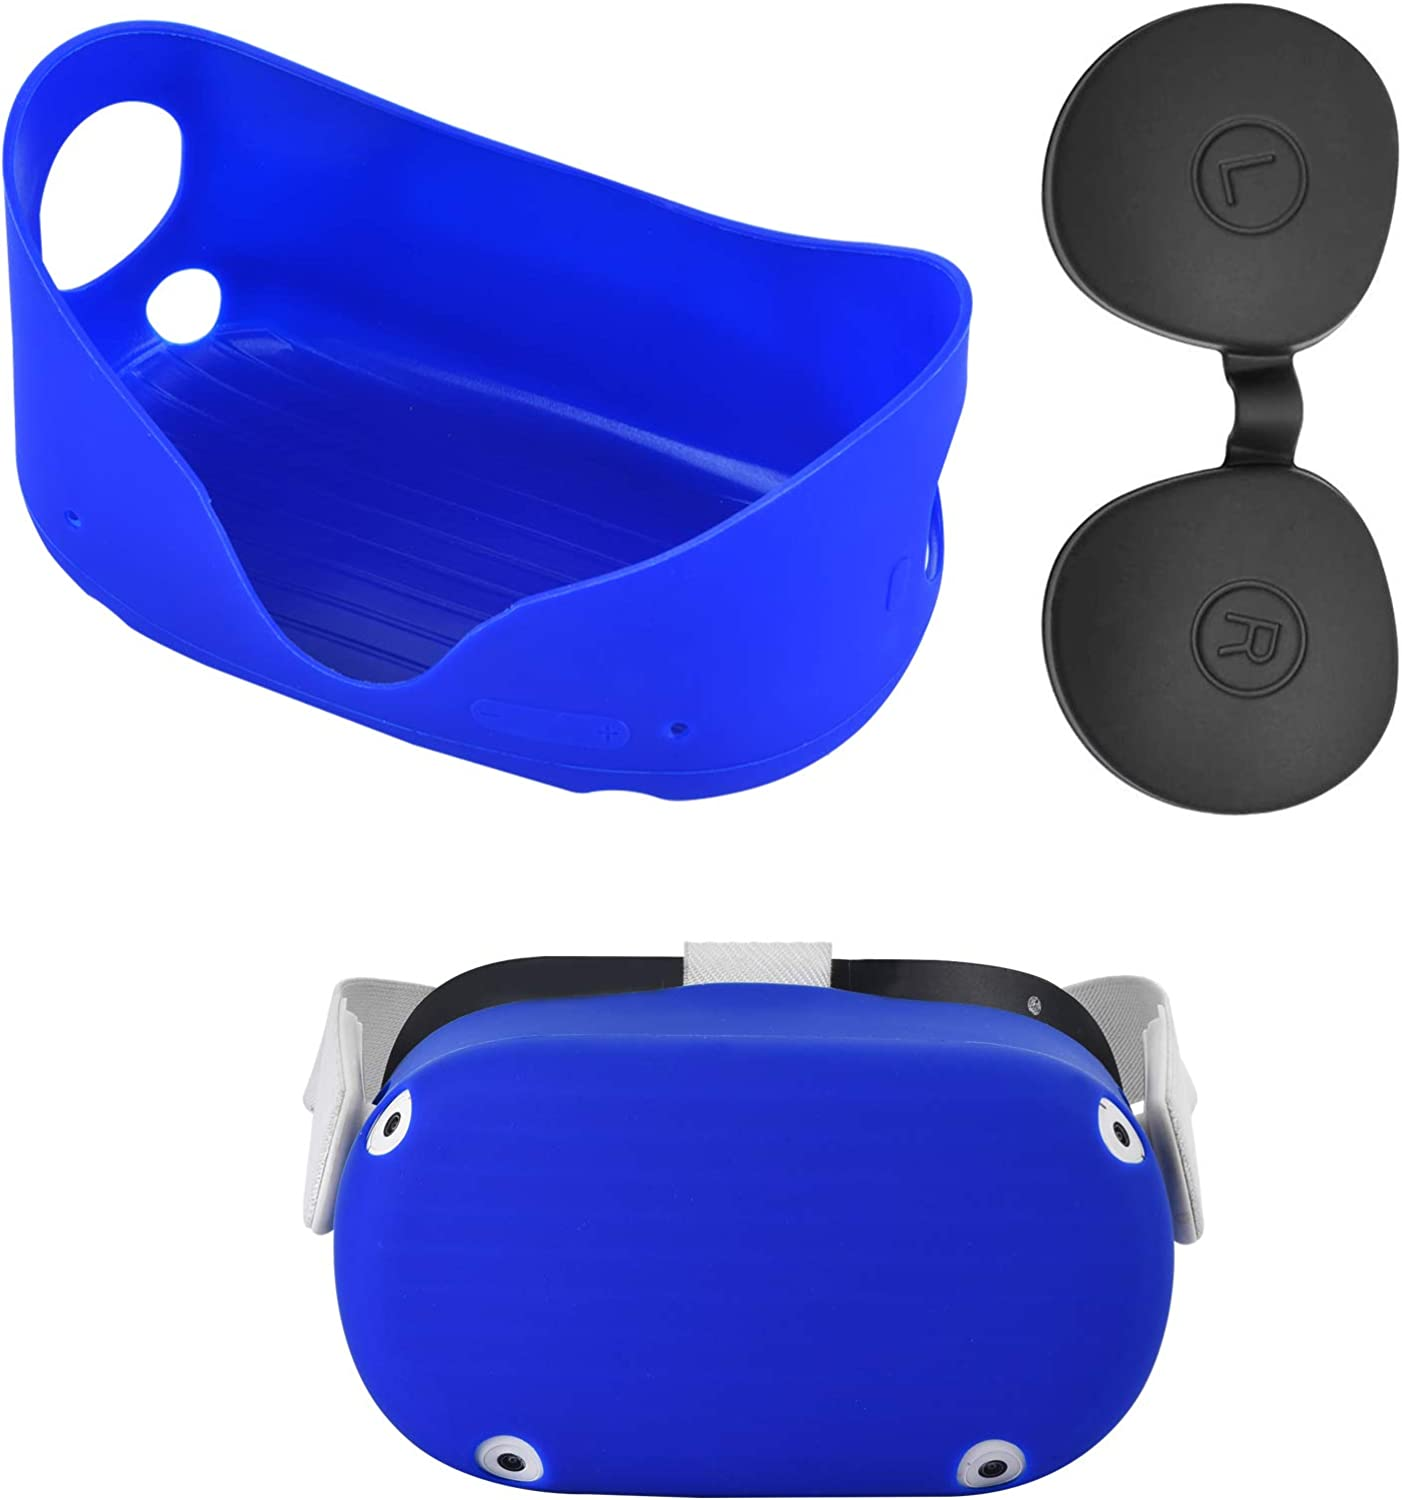 XIAOGE Silicone Front Protector Cover for Oculus Quest 2 with Black Lens Cover Accessories Dust Proof Washable Oculus Quest 2 Silicone Protector Shell (Blue)